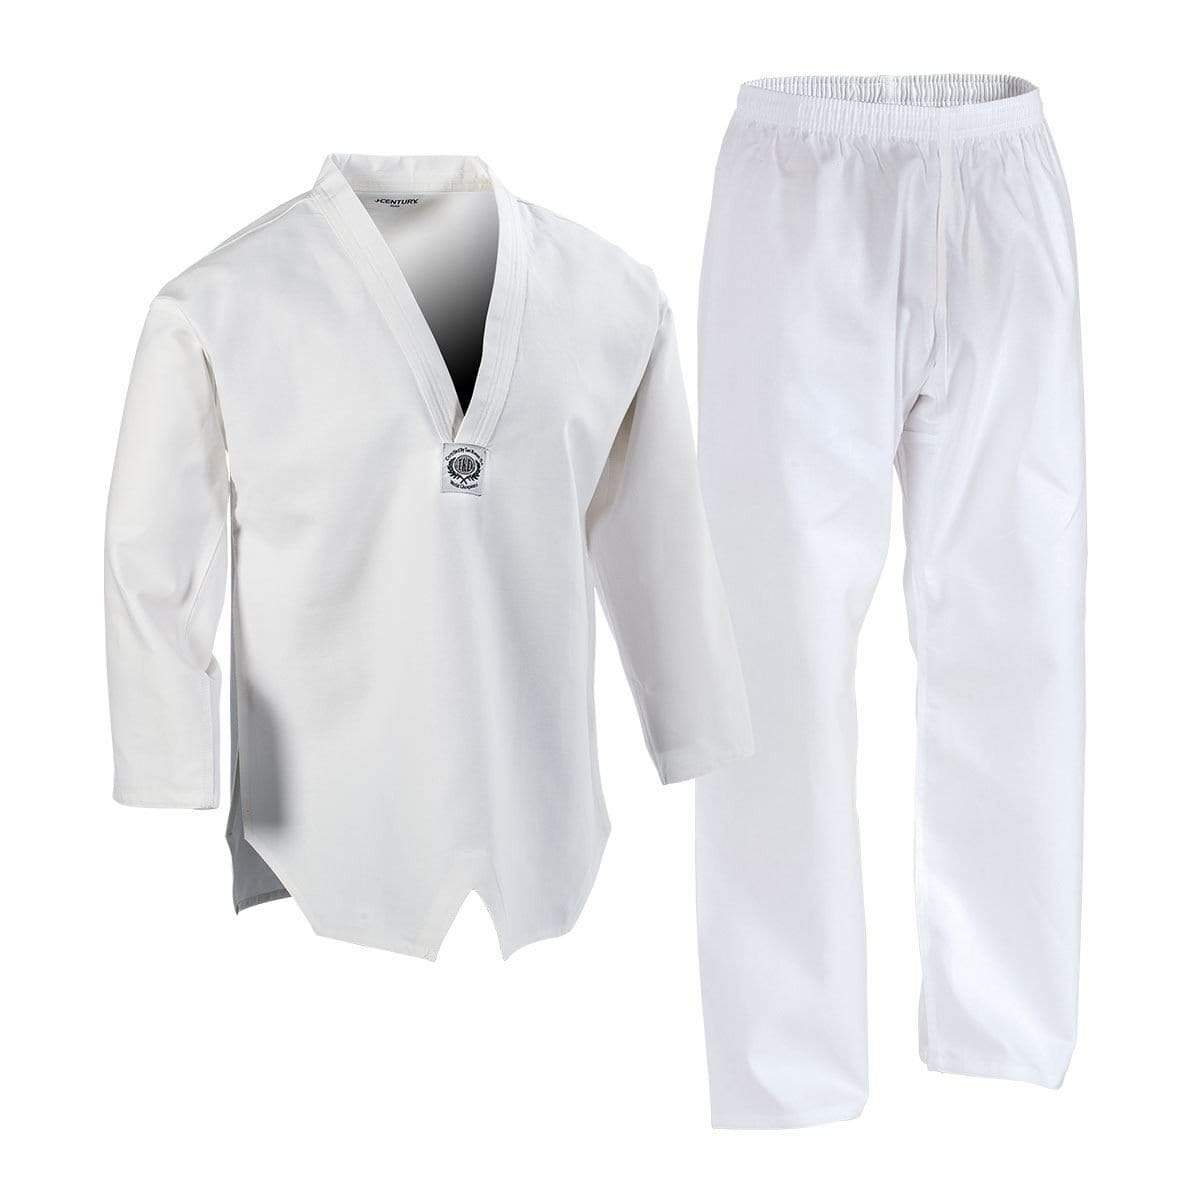 white 7 oz Middleweight TKD Student Uniform c04205